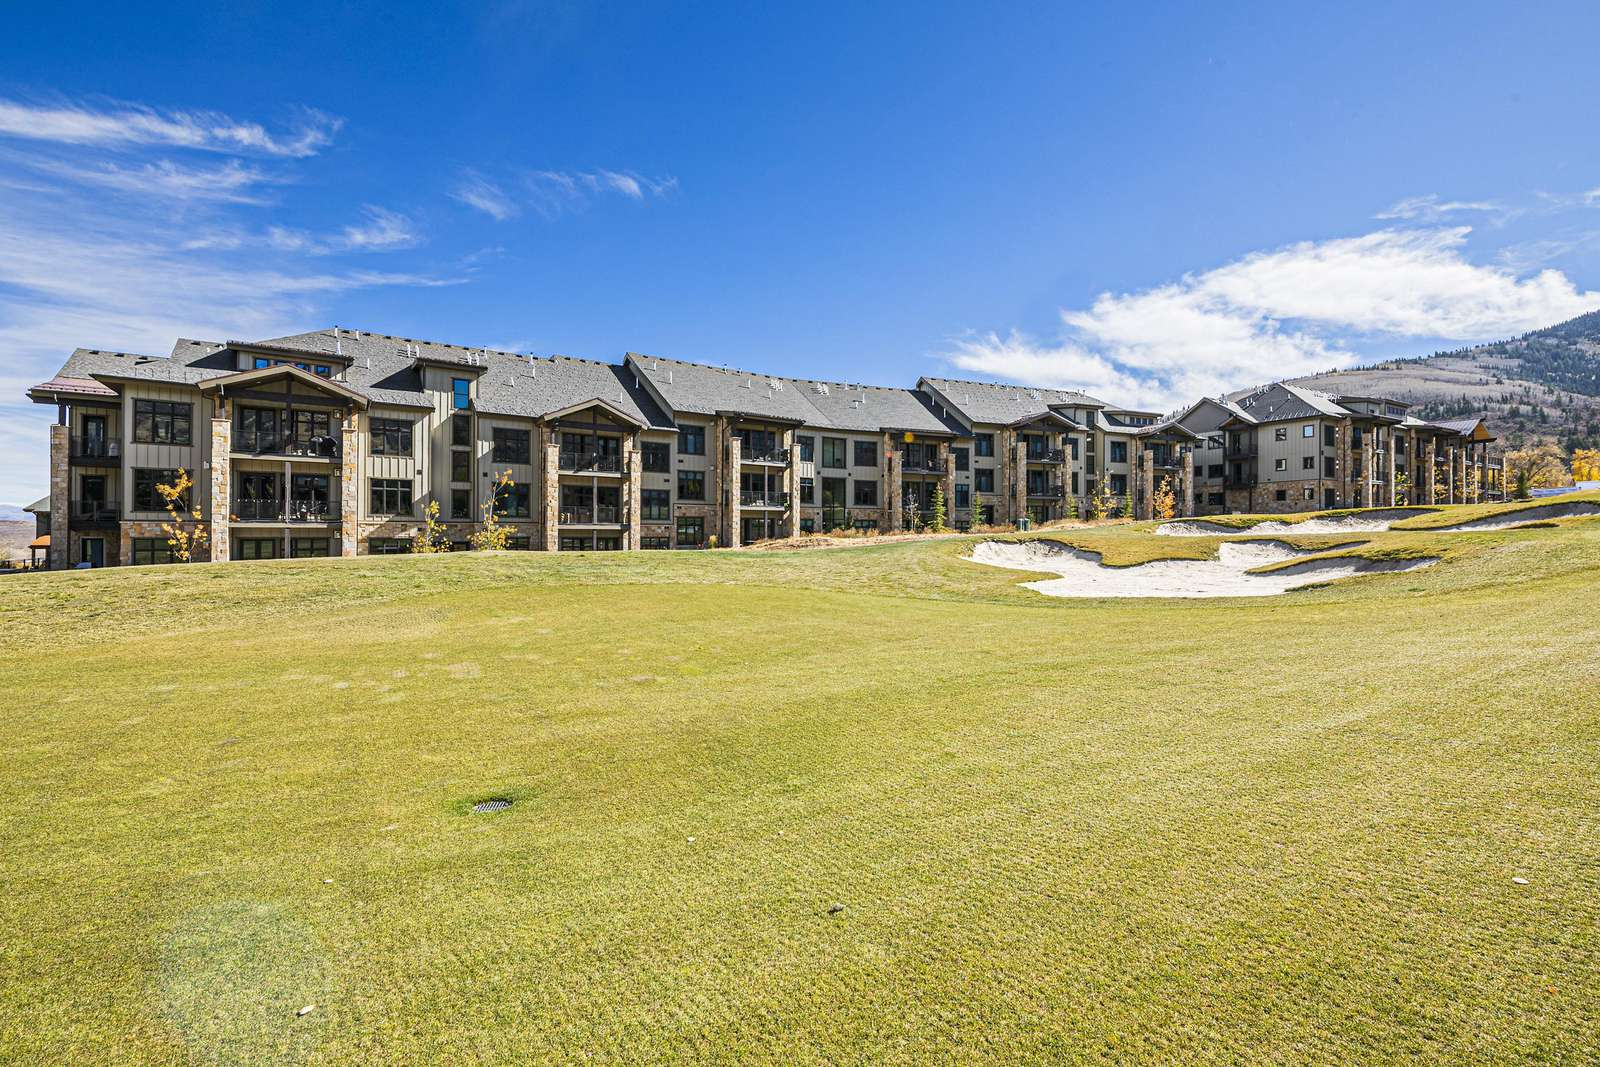 The condo sits along the 13th fairway of the Canyons Golf Course